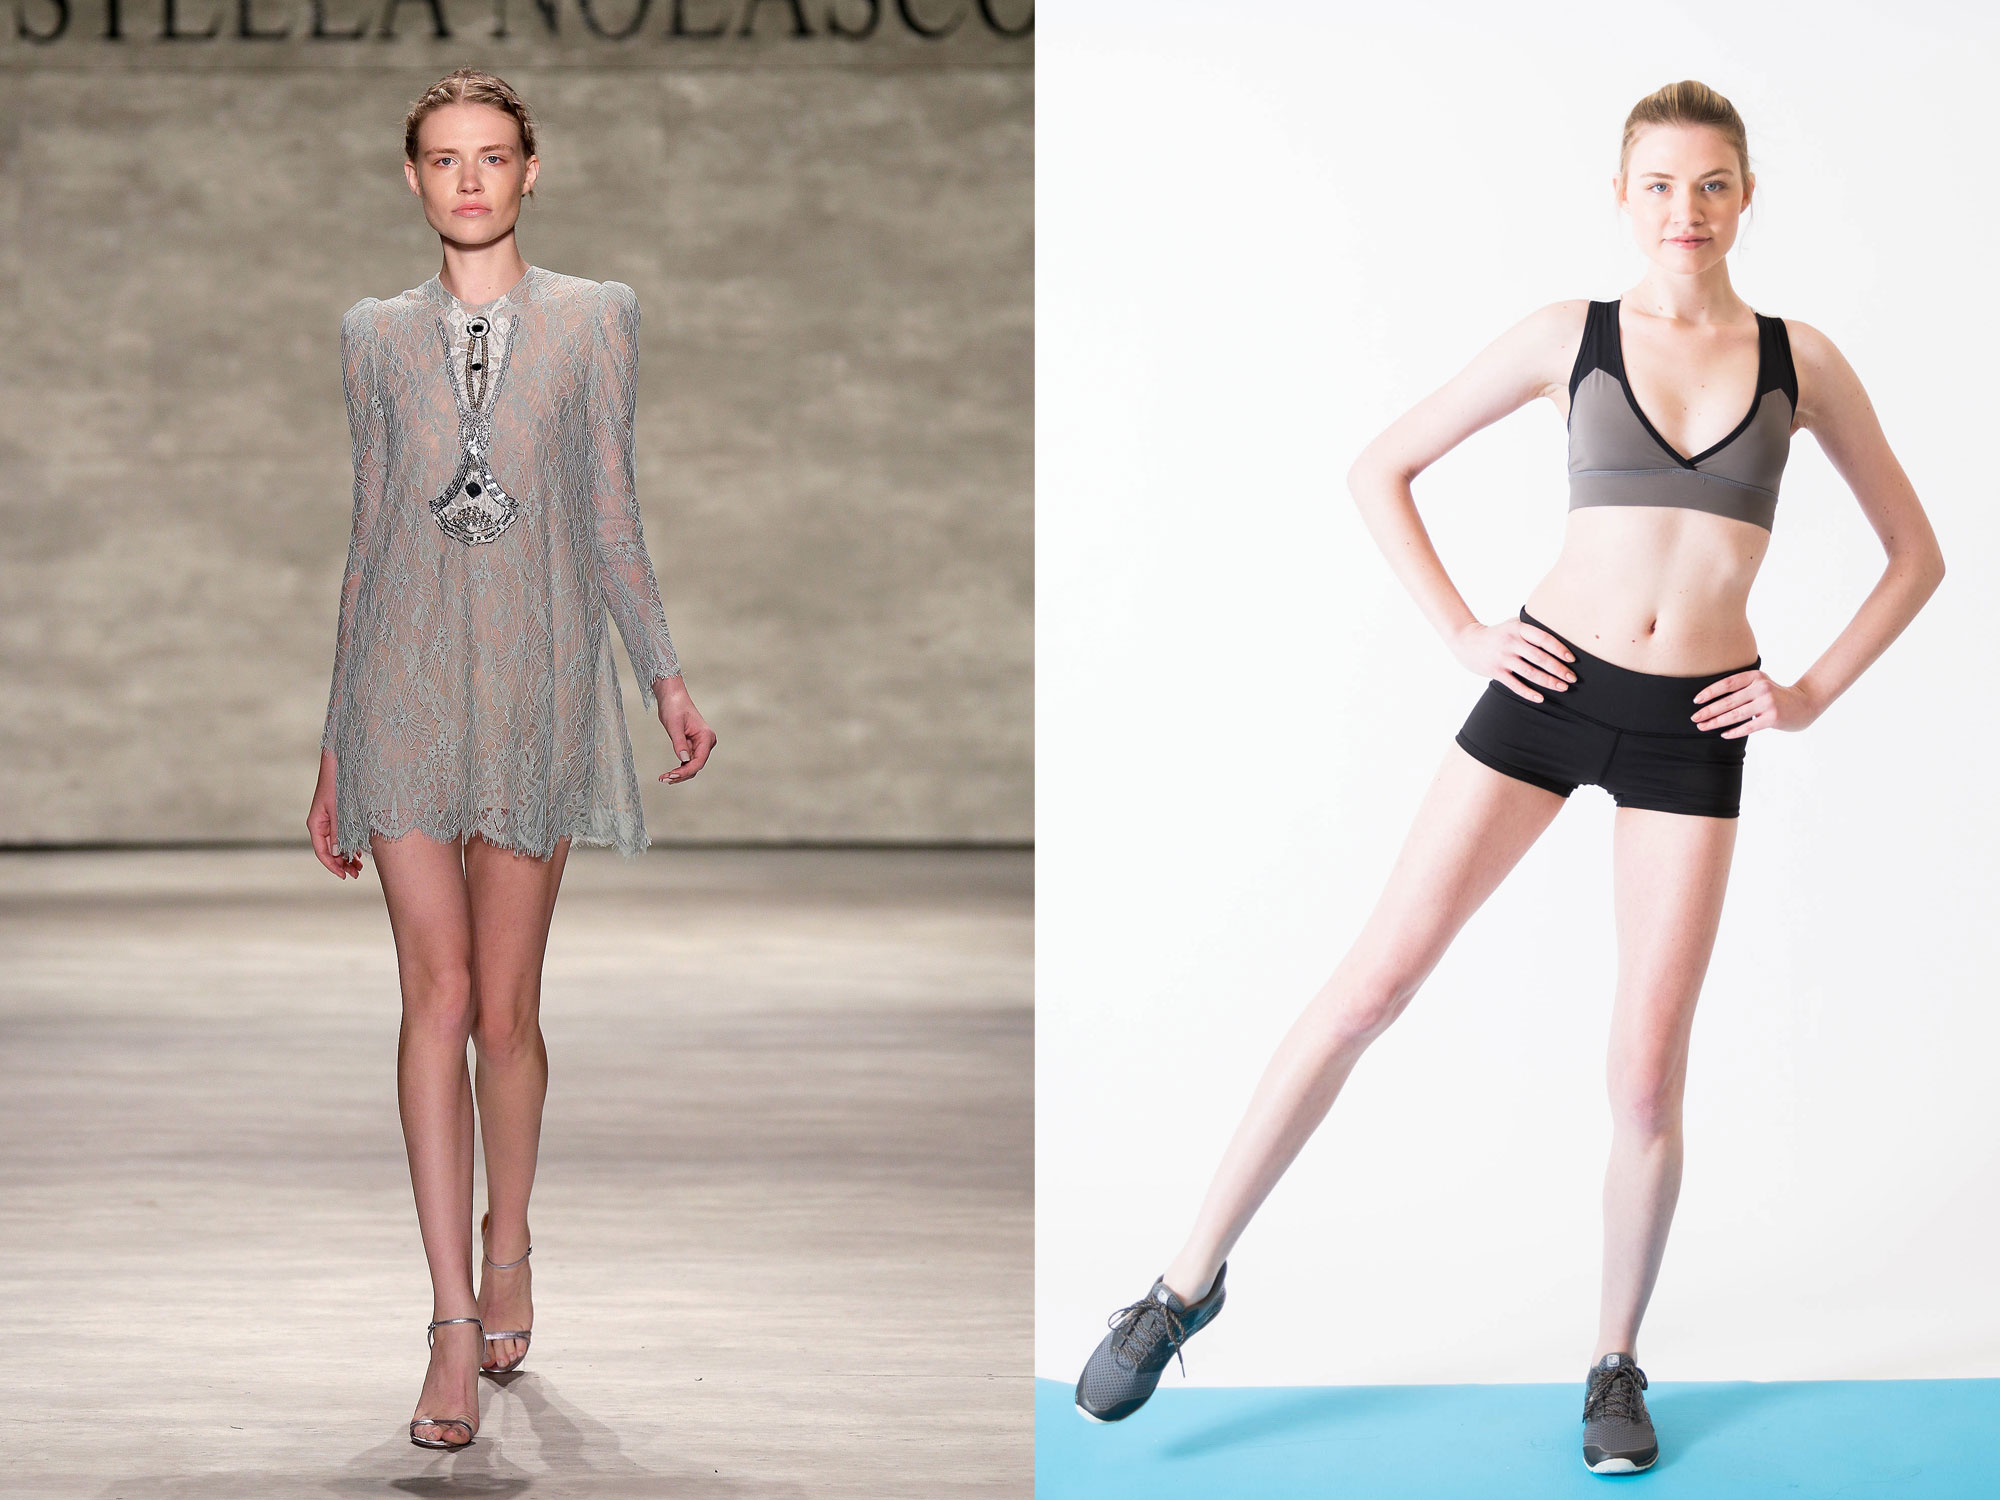 6 exercises to give you long  lean runway model legs